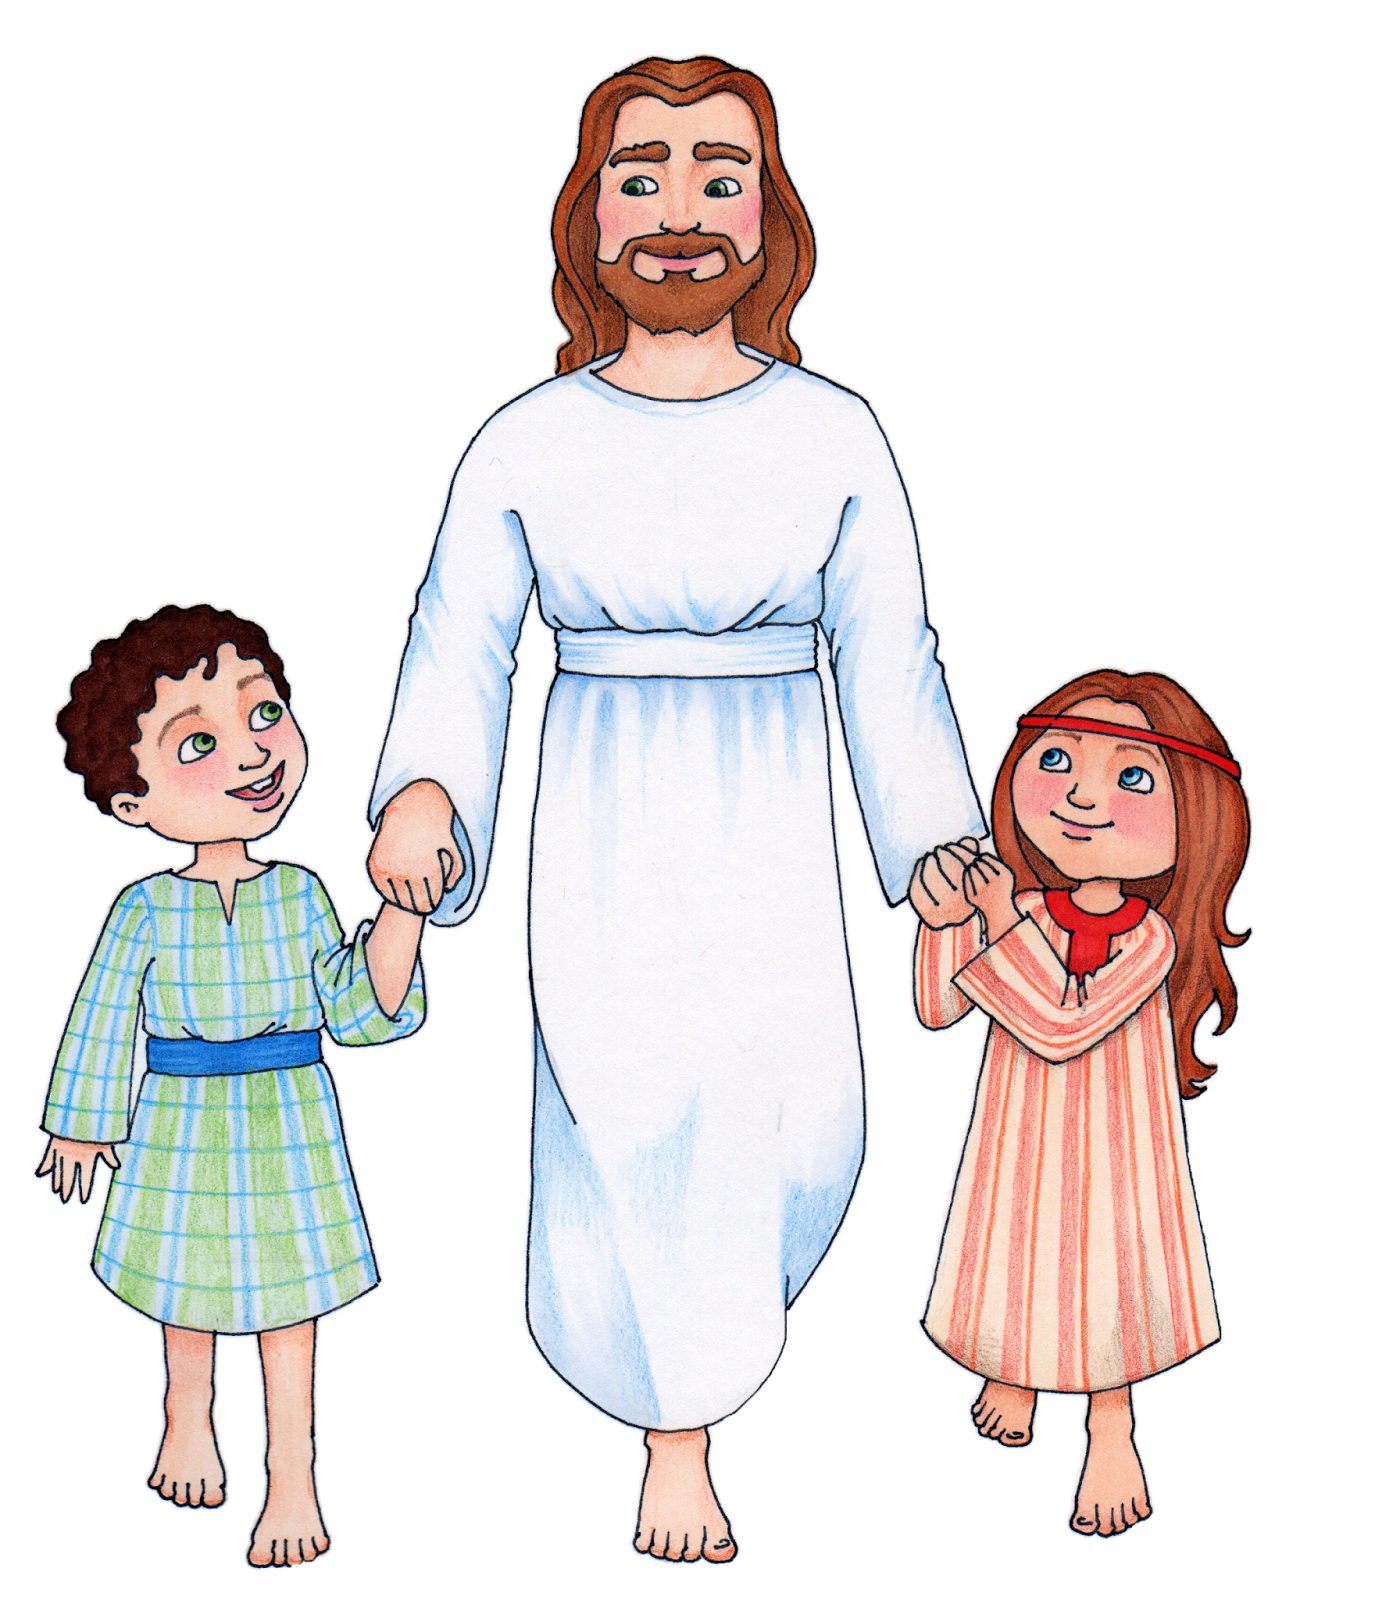 Christ walking with Children CLICK HERE TO DOWNLOAD.